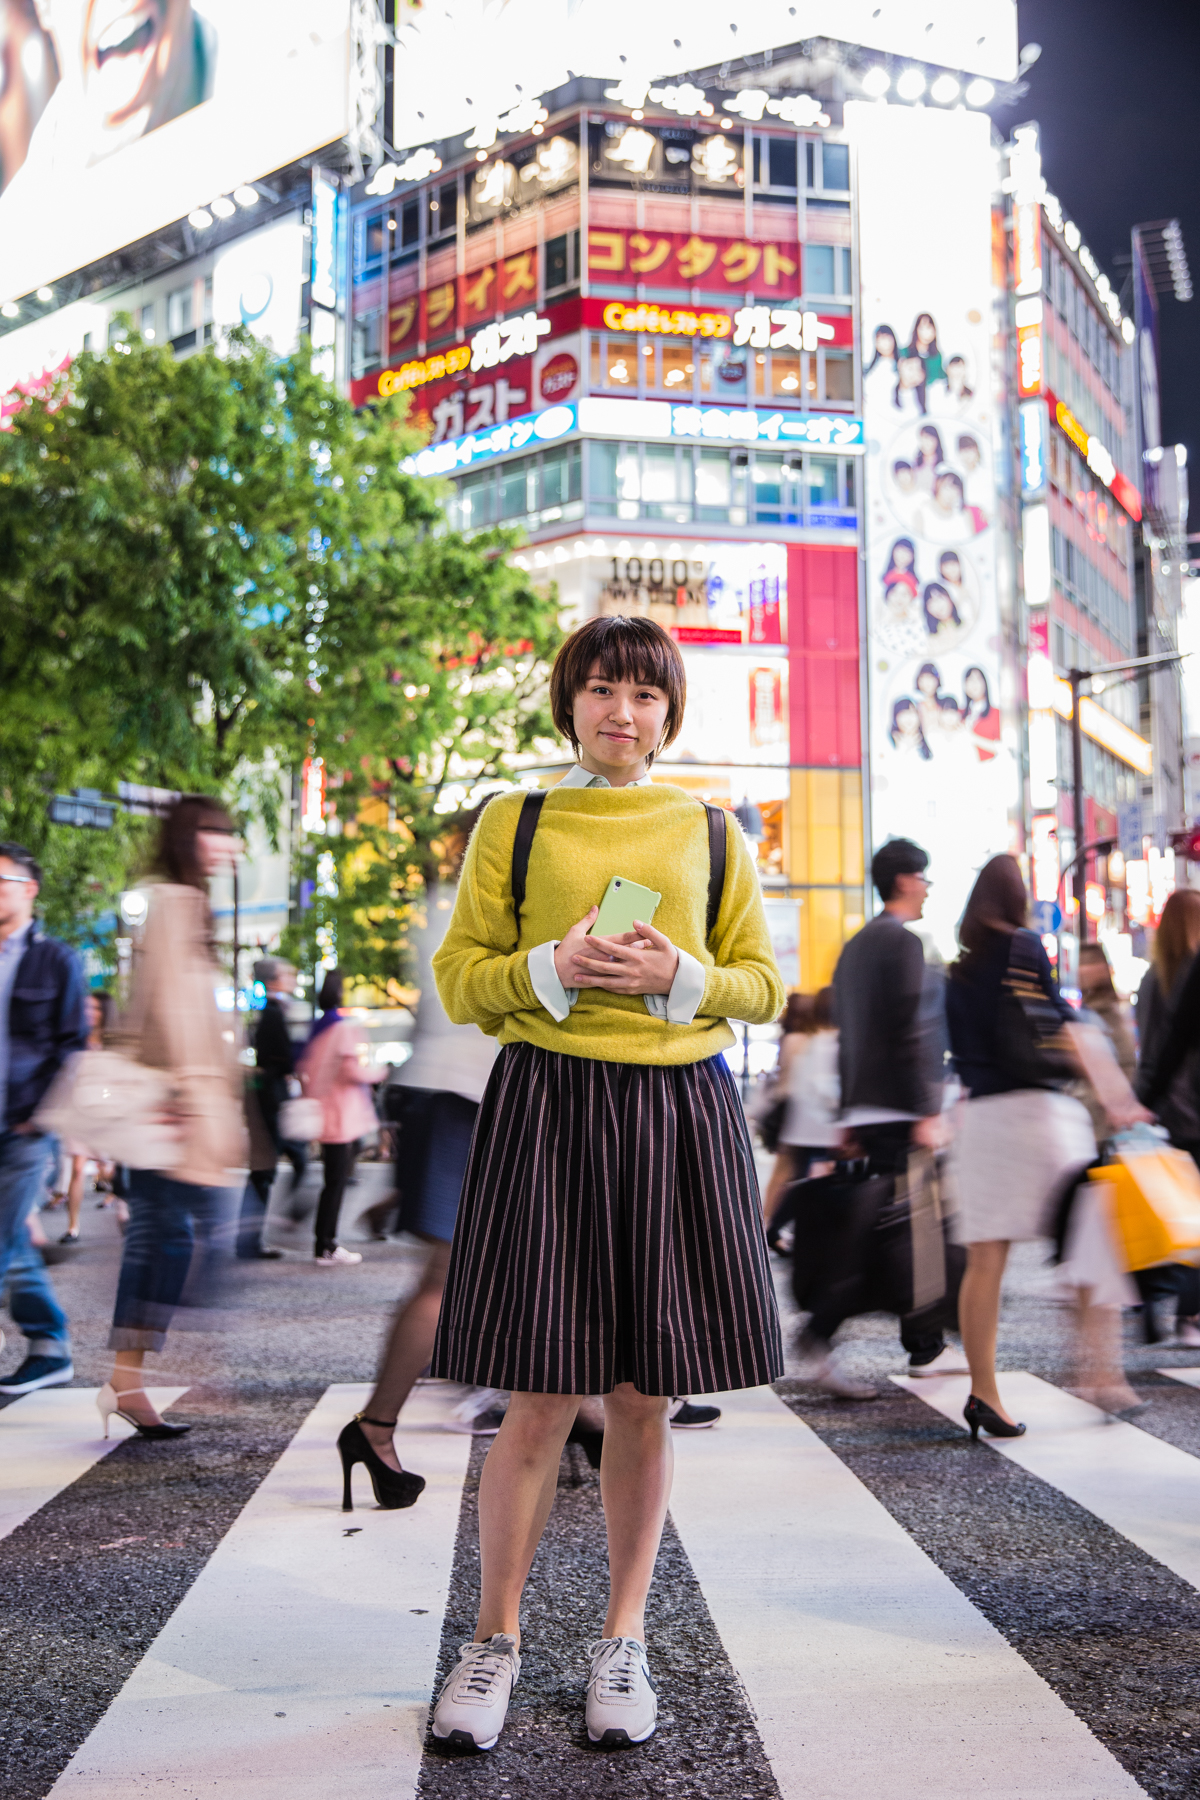 1920_25_SHIBUYA_CROSSING_0377_